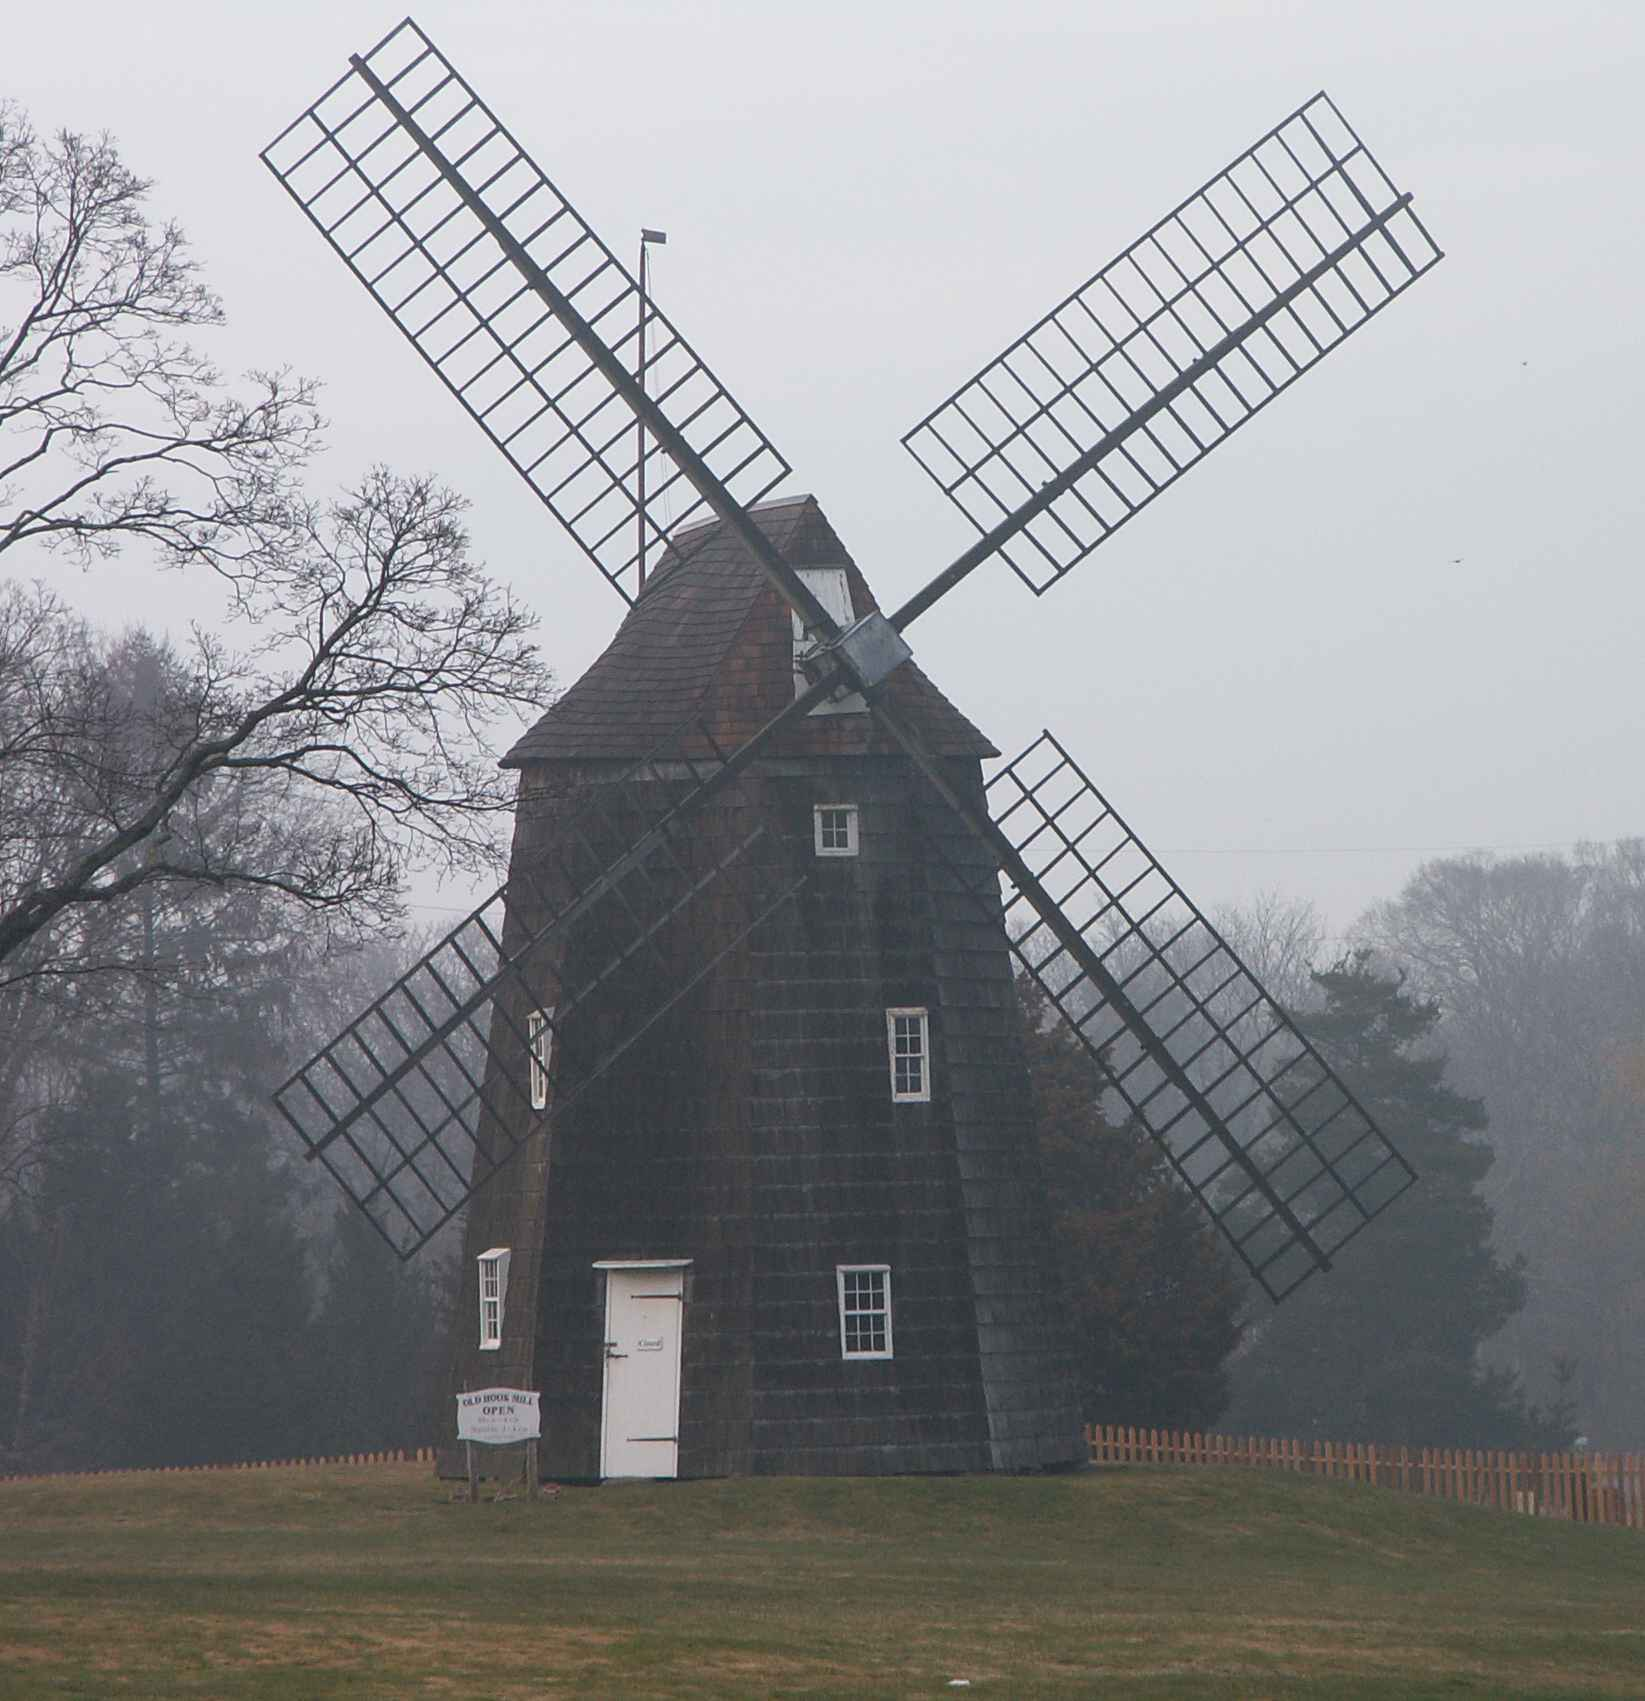 East Hampton (village), New York - Wikipedia, the free encyclopediaeast hampton village